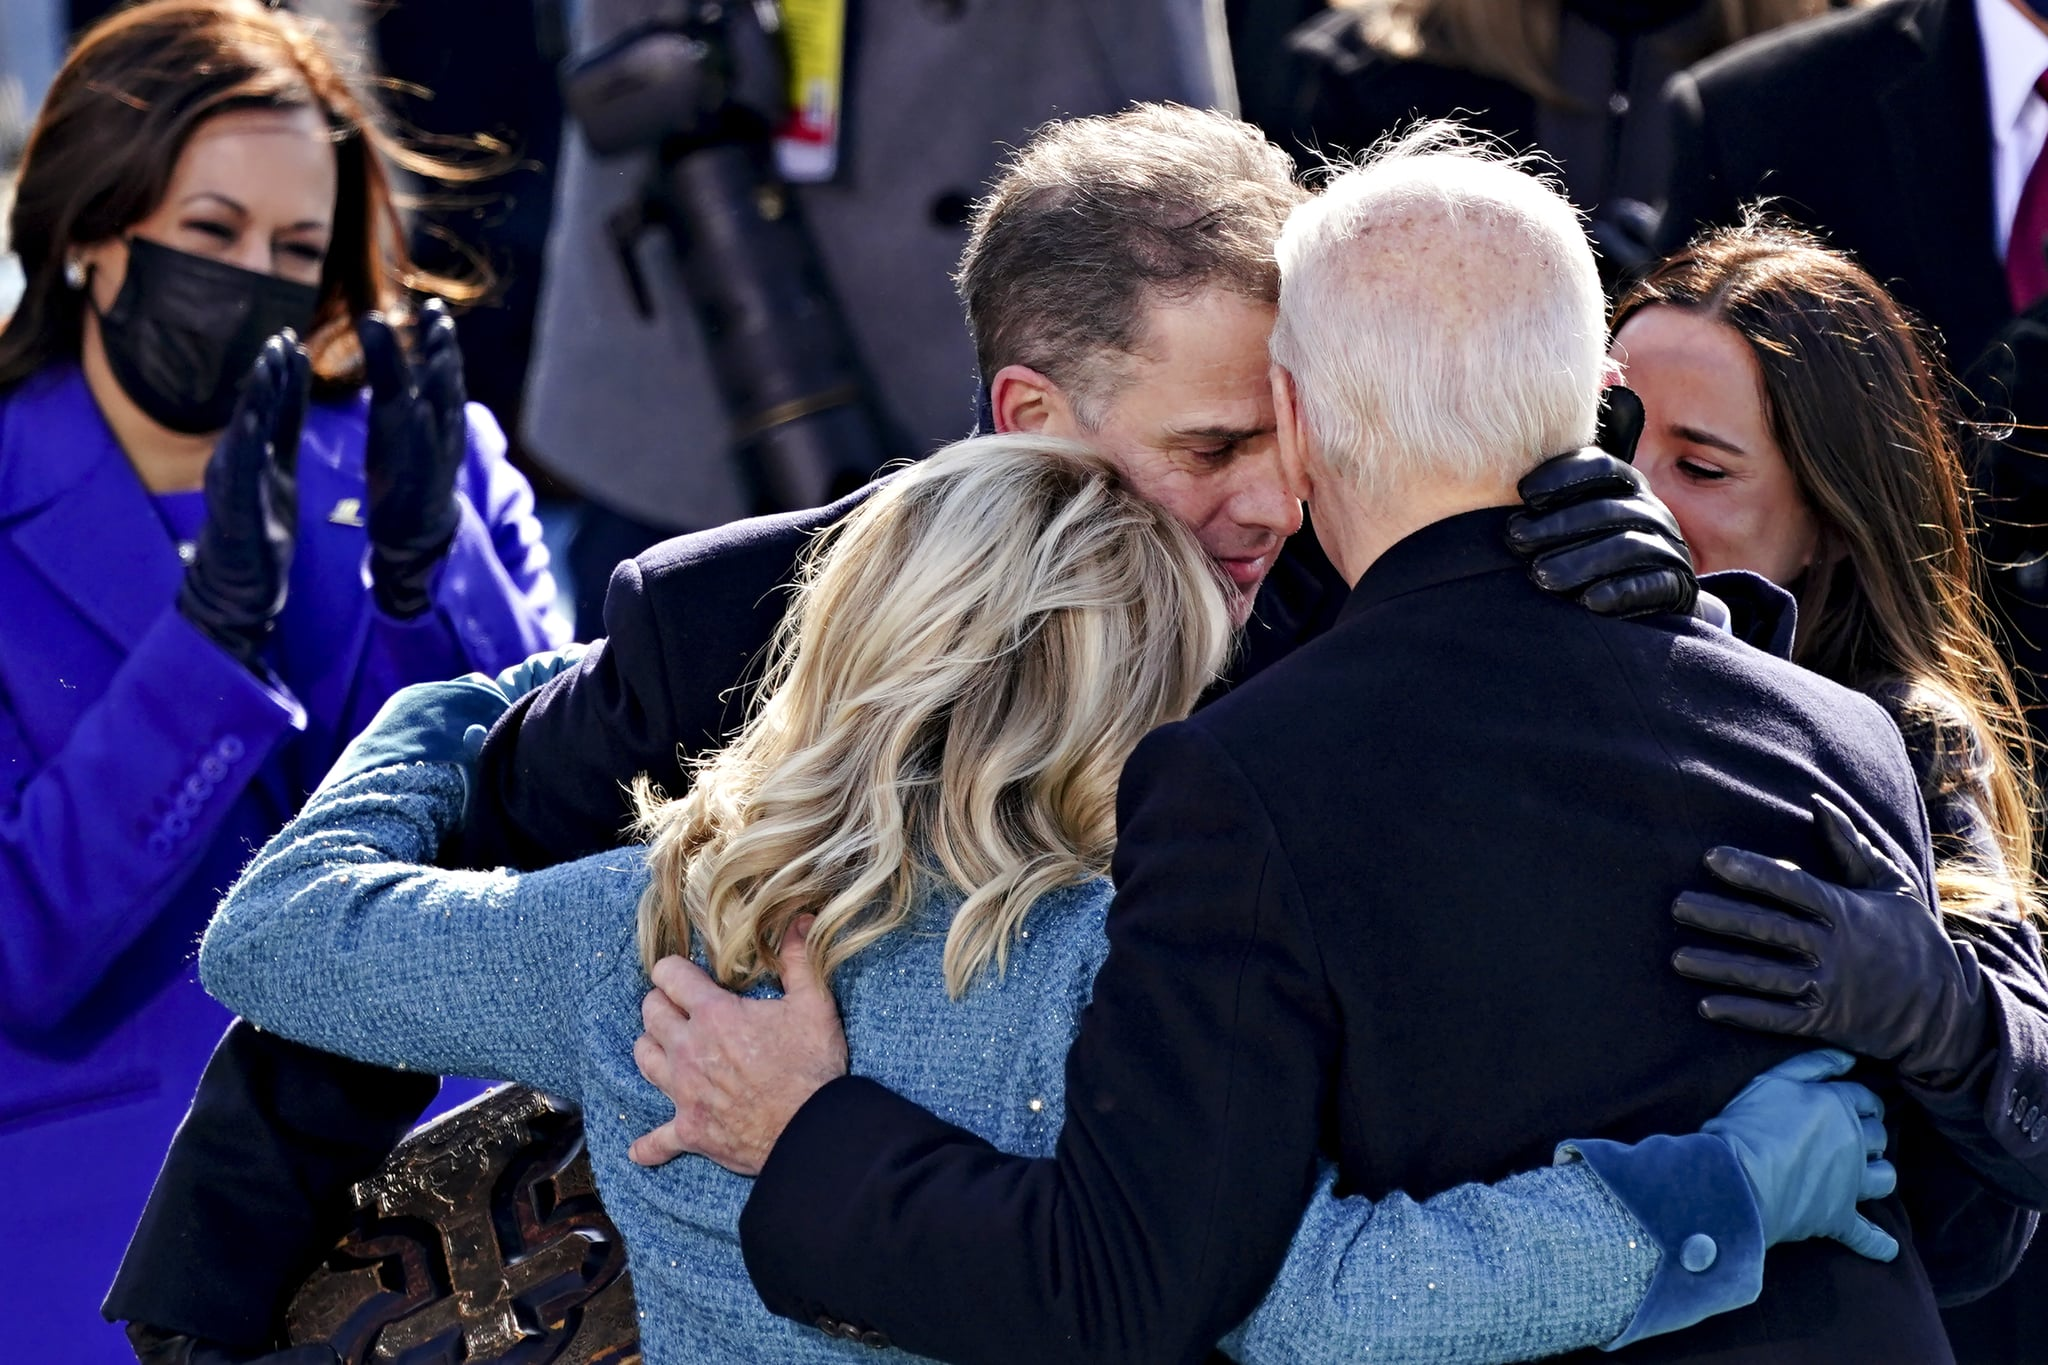 TOPSHOT - US President Joe Biden(R) is comforted by his son Hunter Biden and First Lady Jill Biden after being sworn in during the 59th presidential inauguration in Washington, DC on the West Front of the US Capitol on January 20, 2021 in Washington, DC. - During today's inauguration ceremony Joe Biden became the 46th president of the United States. (Photo by Kevin Dietsch / POOL / AFP) (Photo by KEVIN DIETSCH/POOL/AFP via Getty Images)